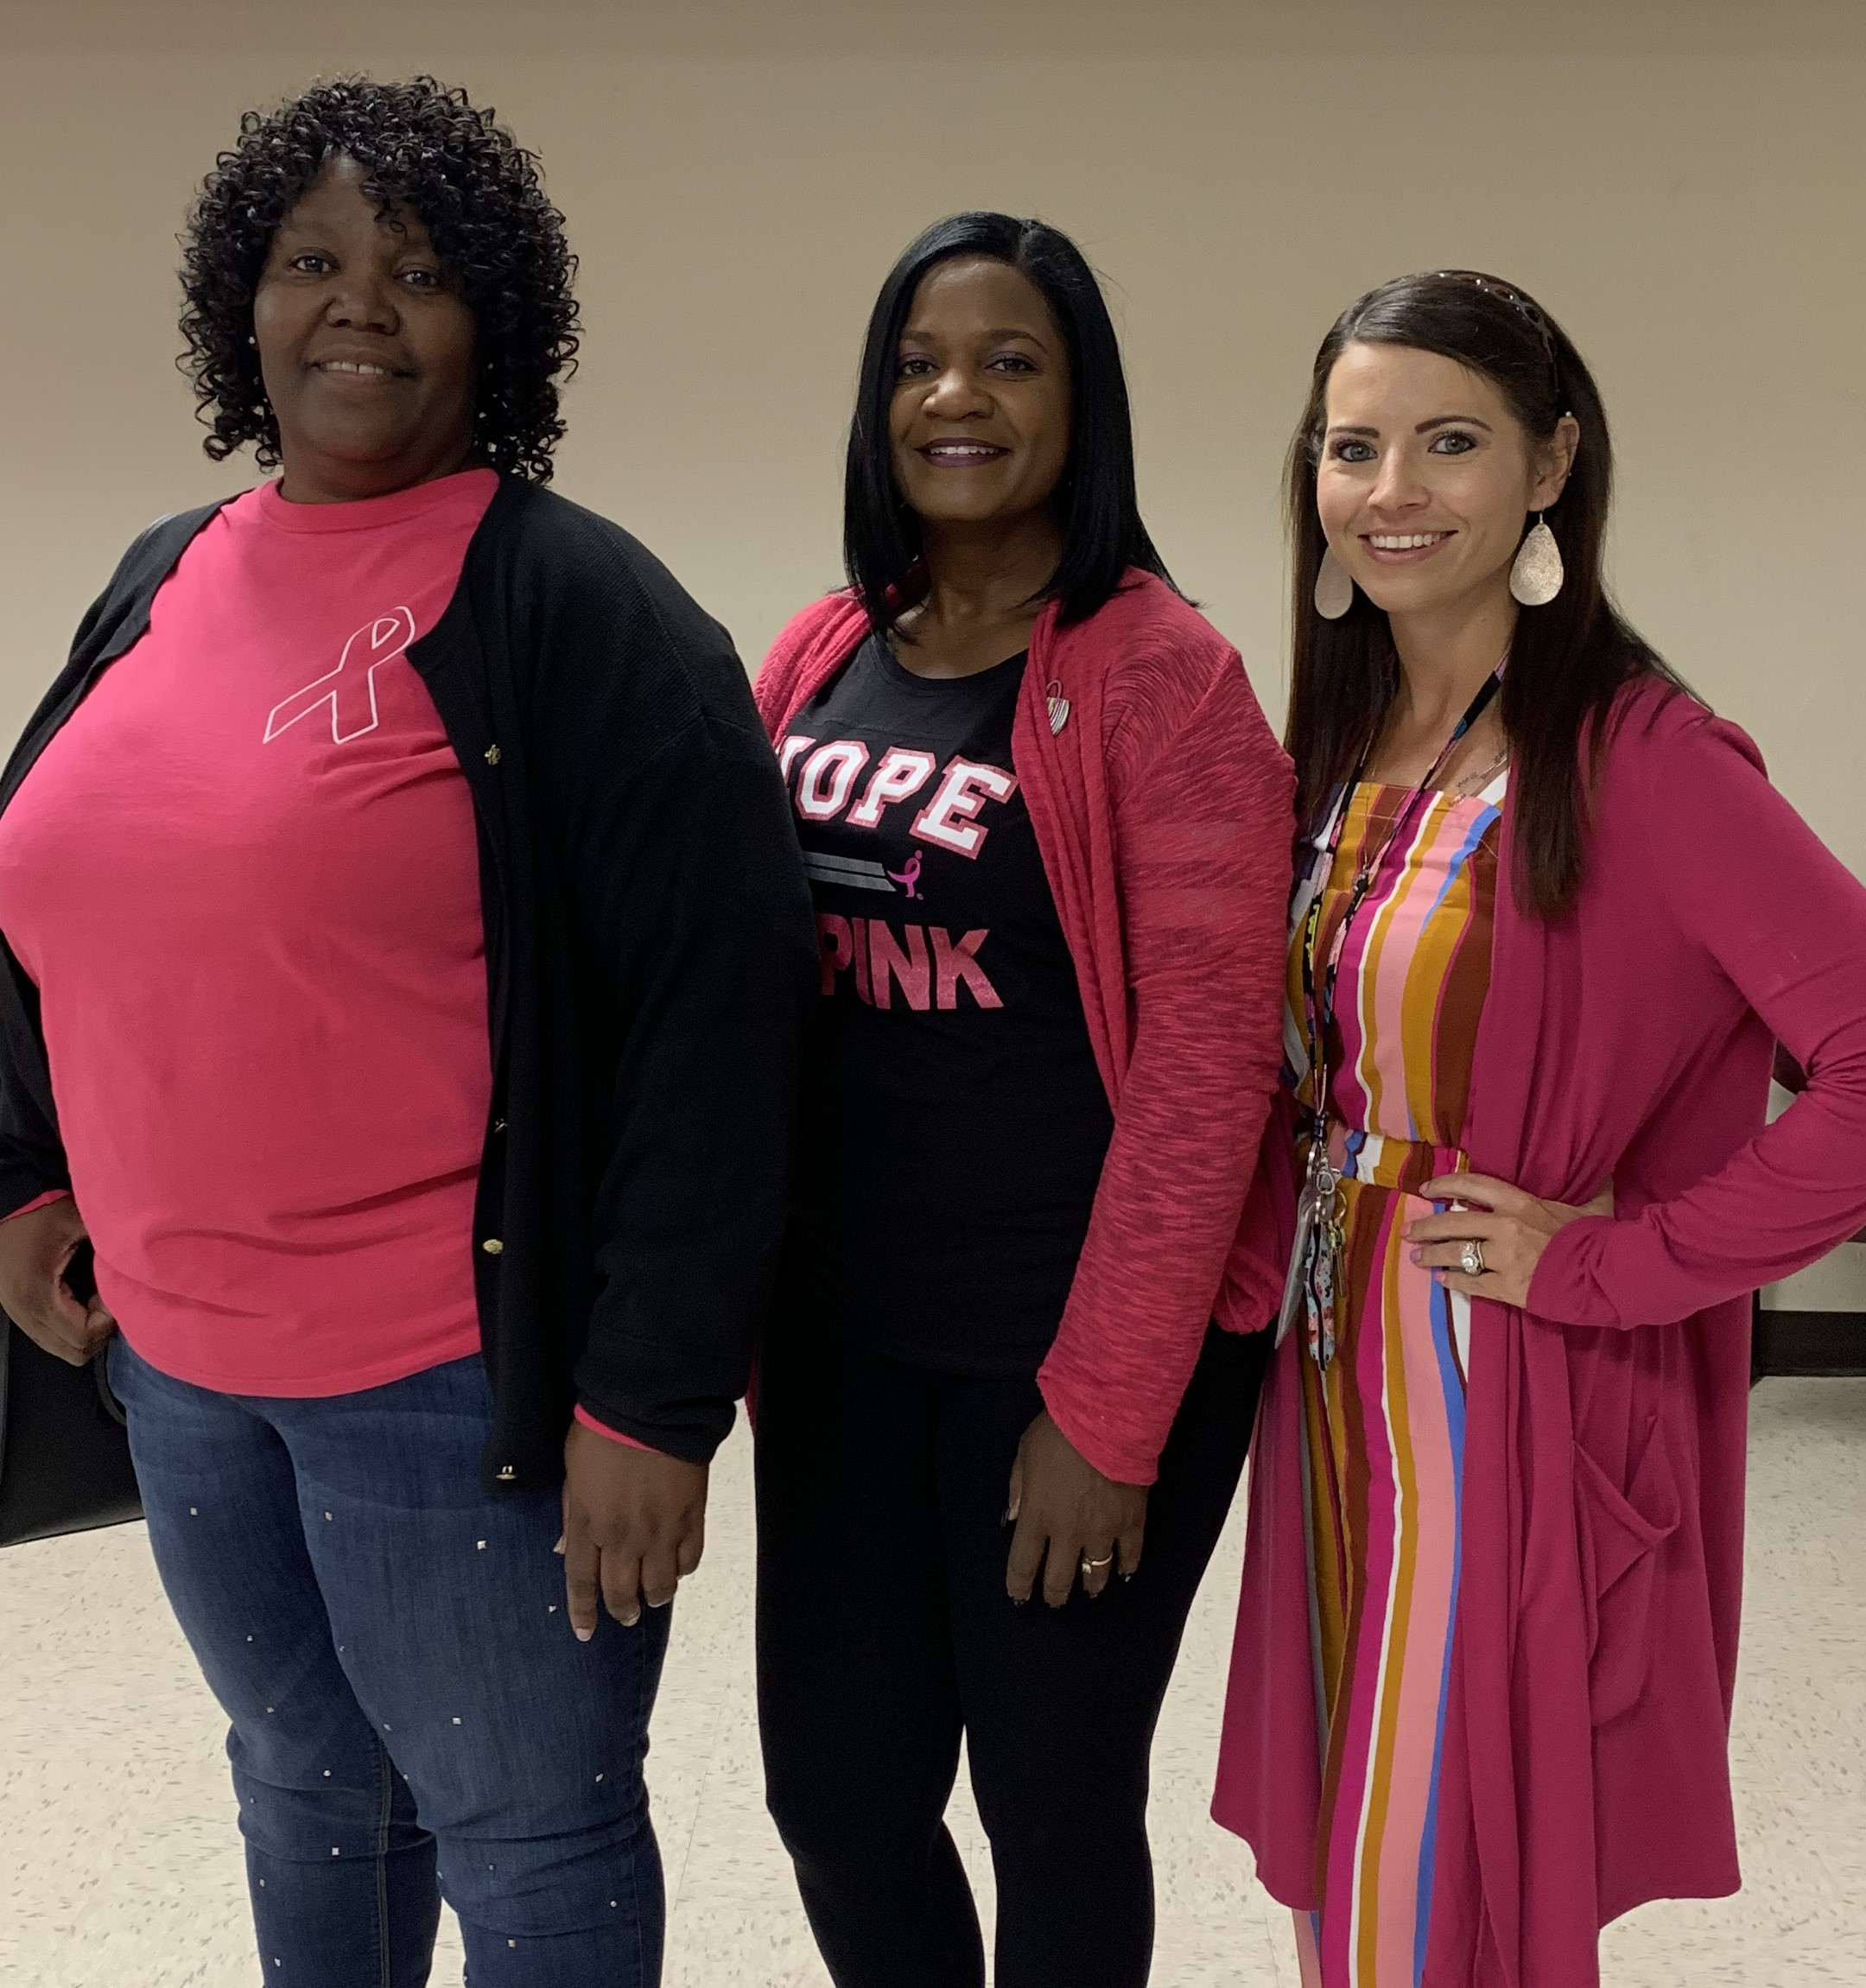 Employees at DIDD's Middle TN office wore pink for Breast Cancer Awareness Month